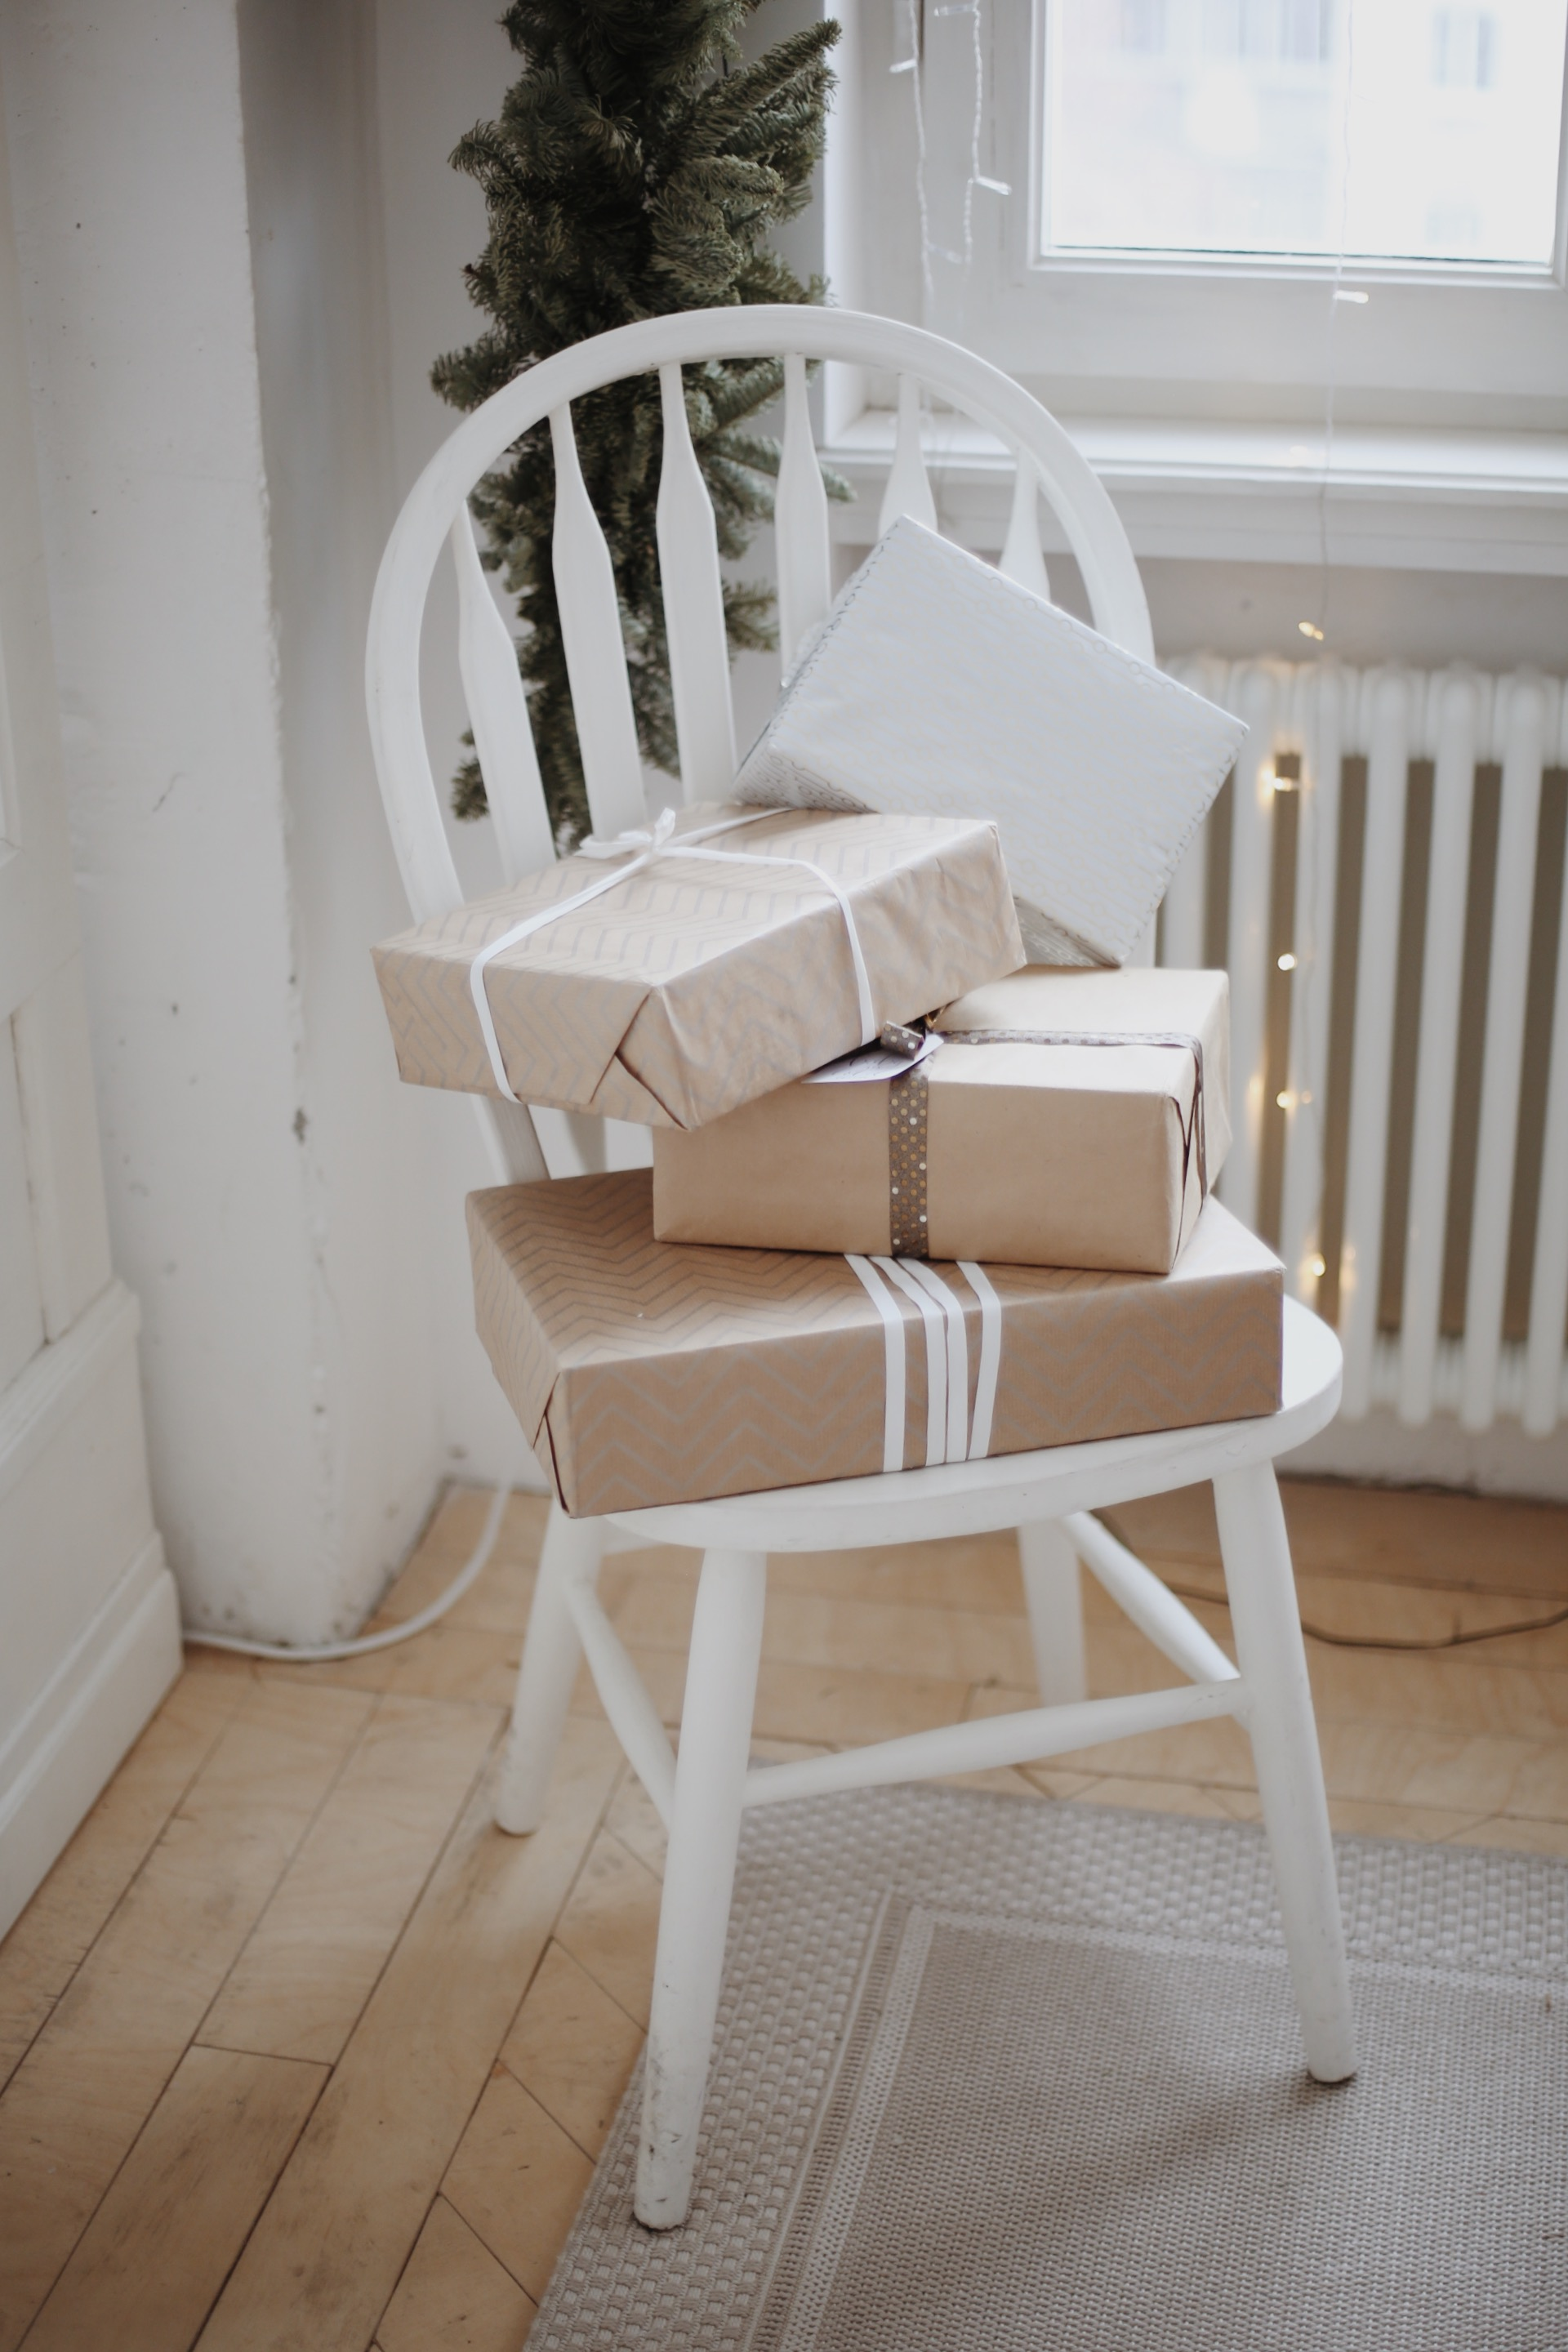 wrapped packages on chair